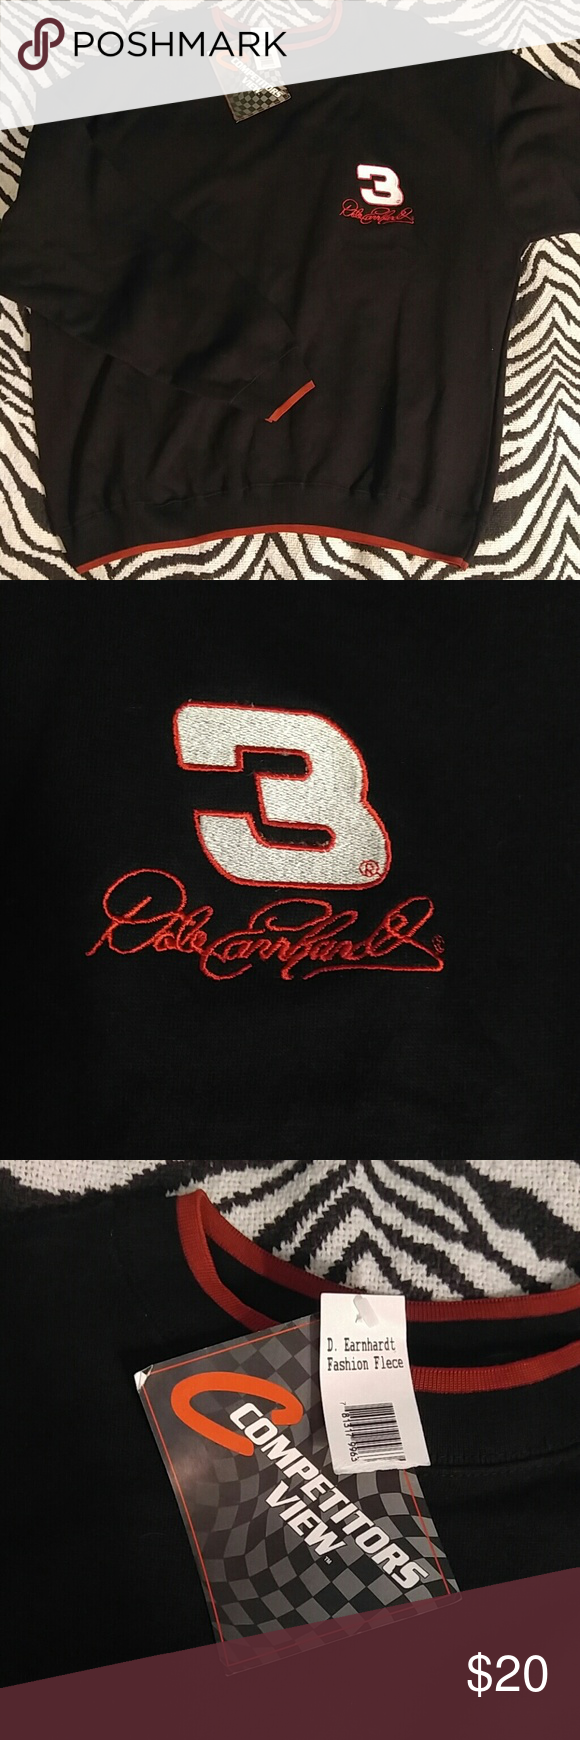 """Vintage Dale Earnhardt black/red sweatshirt L Vintage crewbec sweatshirt celebrating #3 """"The Intimidater"""" Dale Earnhardt. This is a classic Earnhardt sweatshirt but is still NEW with tags attached. Perfect condition! Vintage Shirts Sweatshirts & Hoodies"""